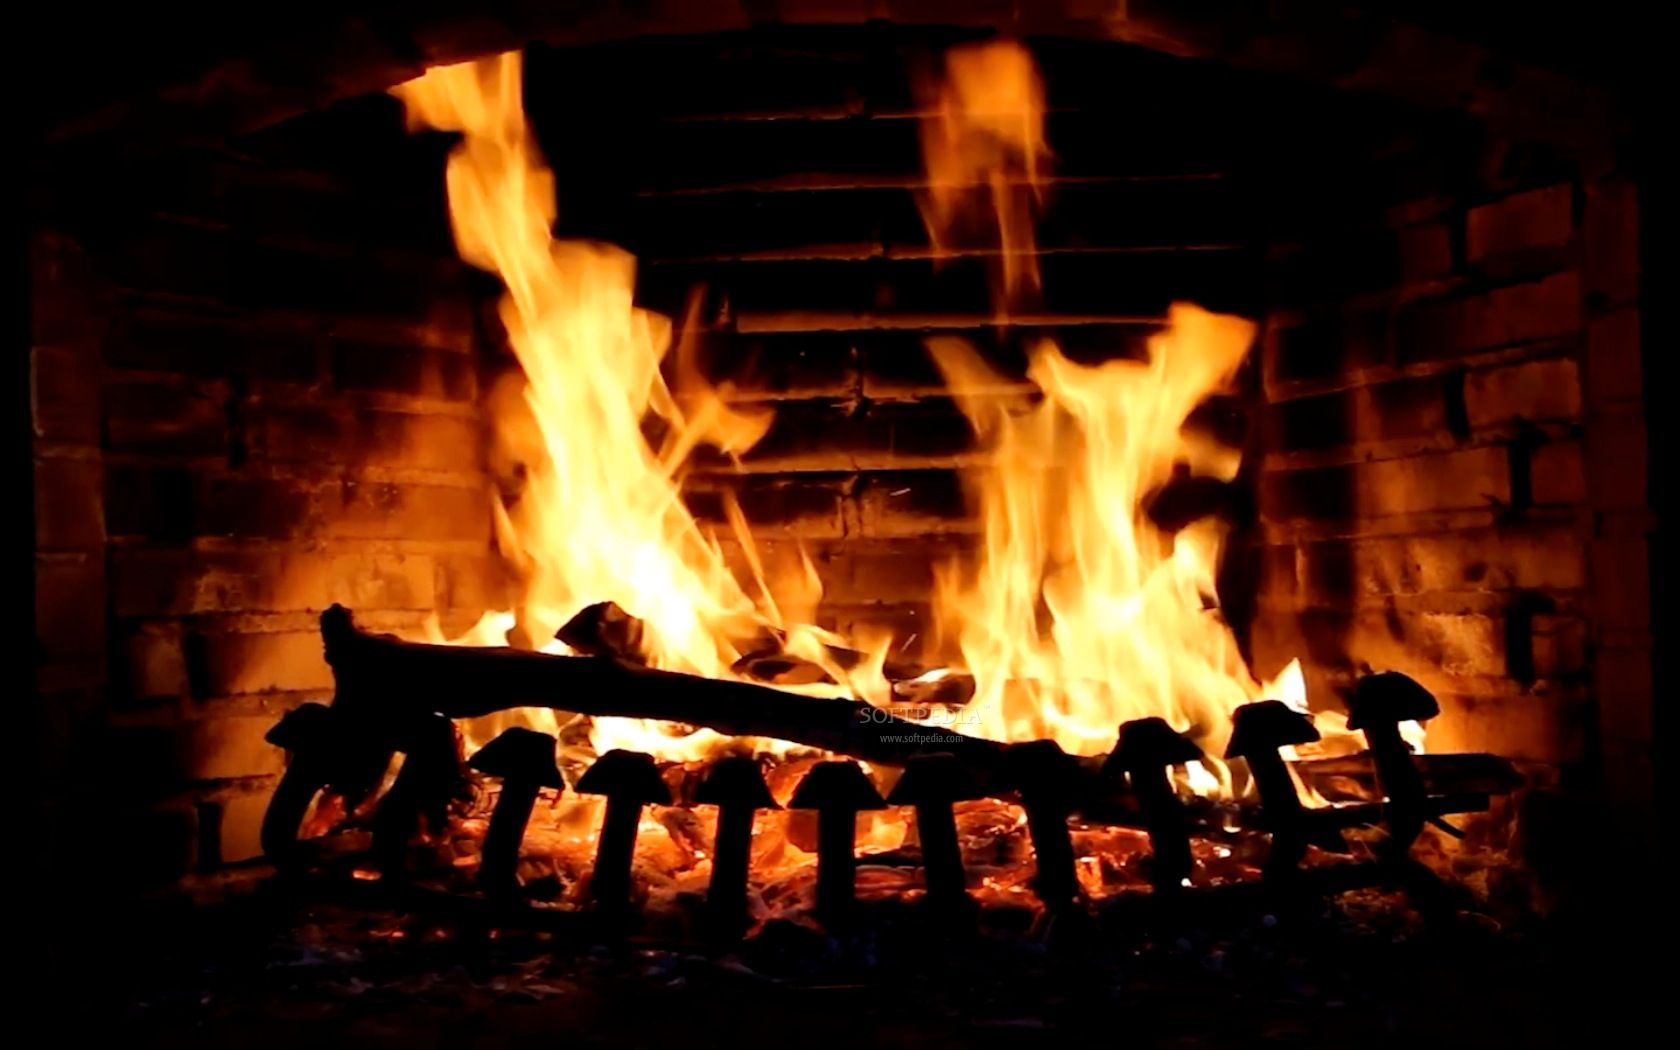 A Warm Fireplace And A Nice Movie Fireplace Screensaver Fireplace Pictures Christmas Fireplace